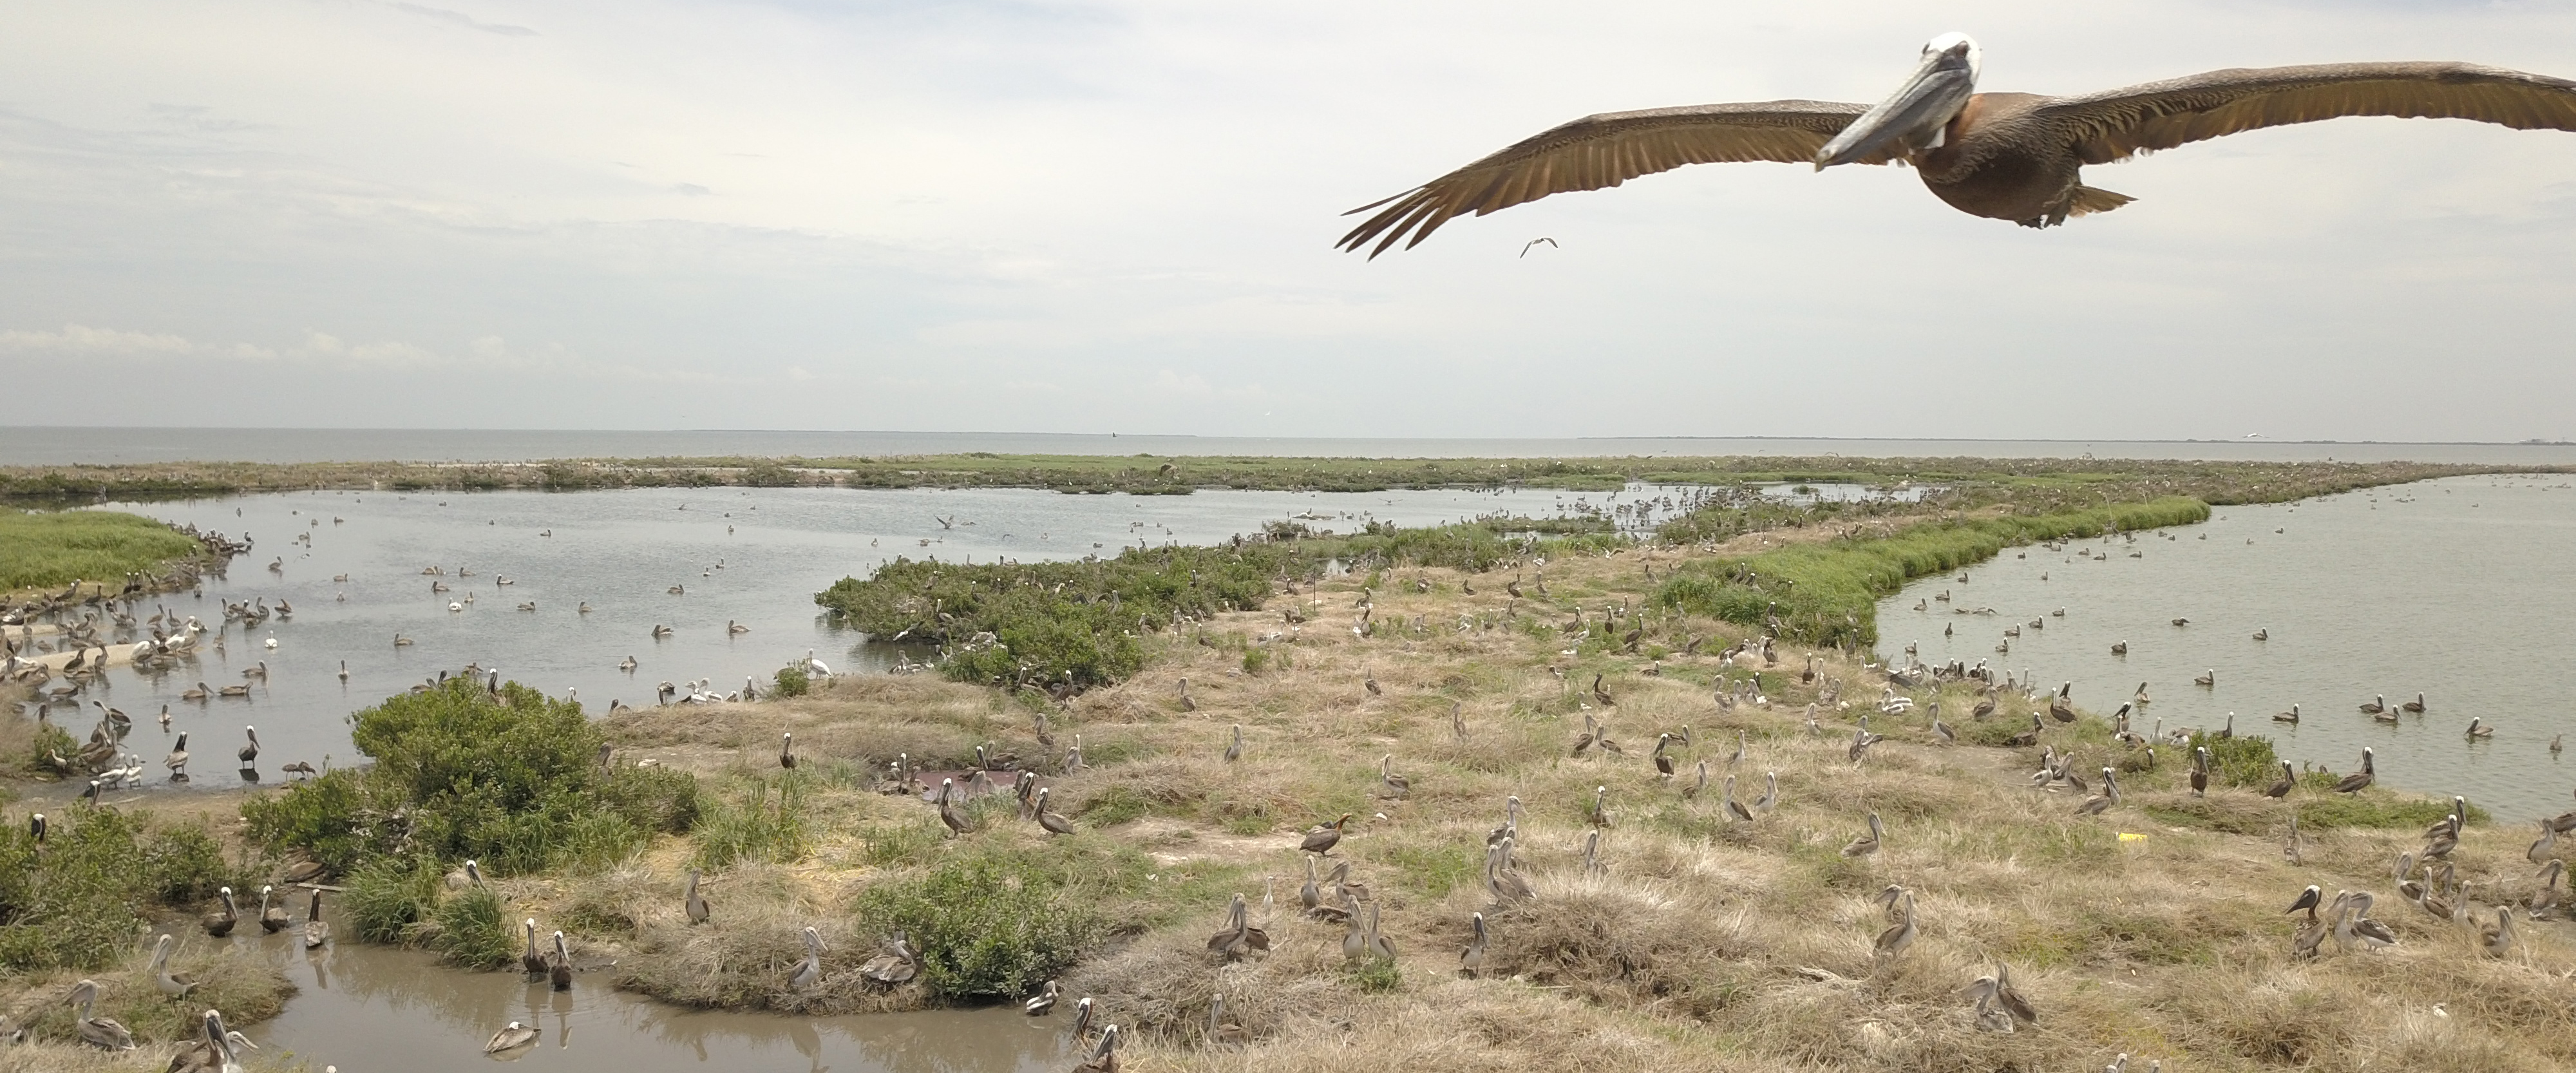 Island Restoration Project Expected to Play Key Role in Future of Brown Pelican